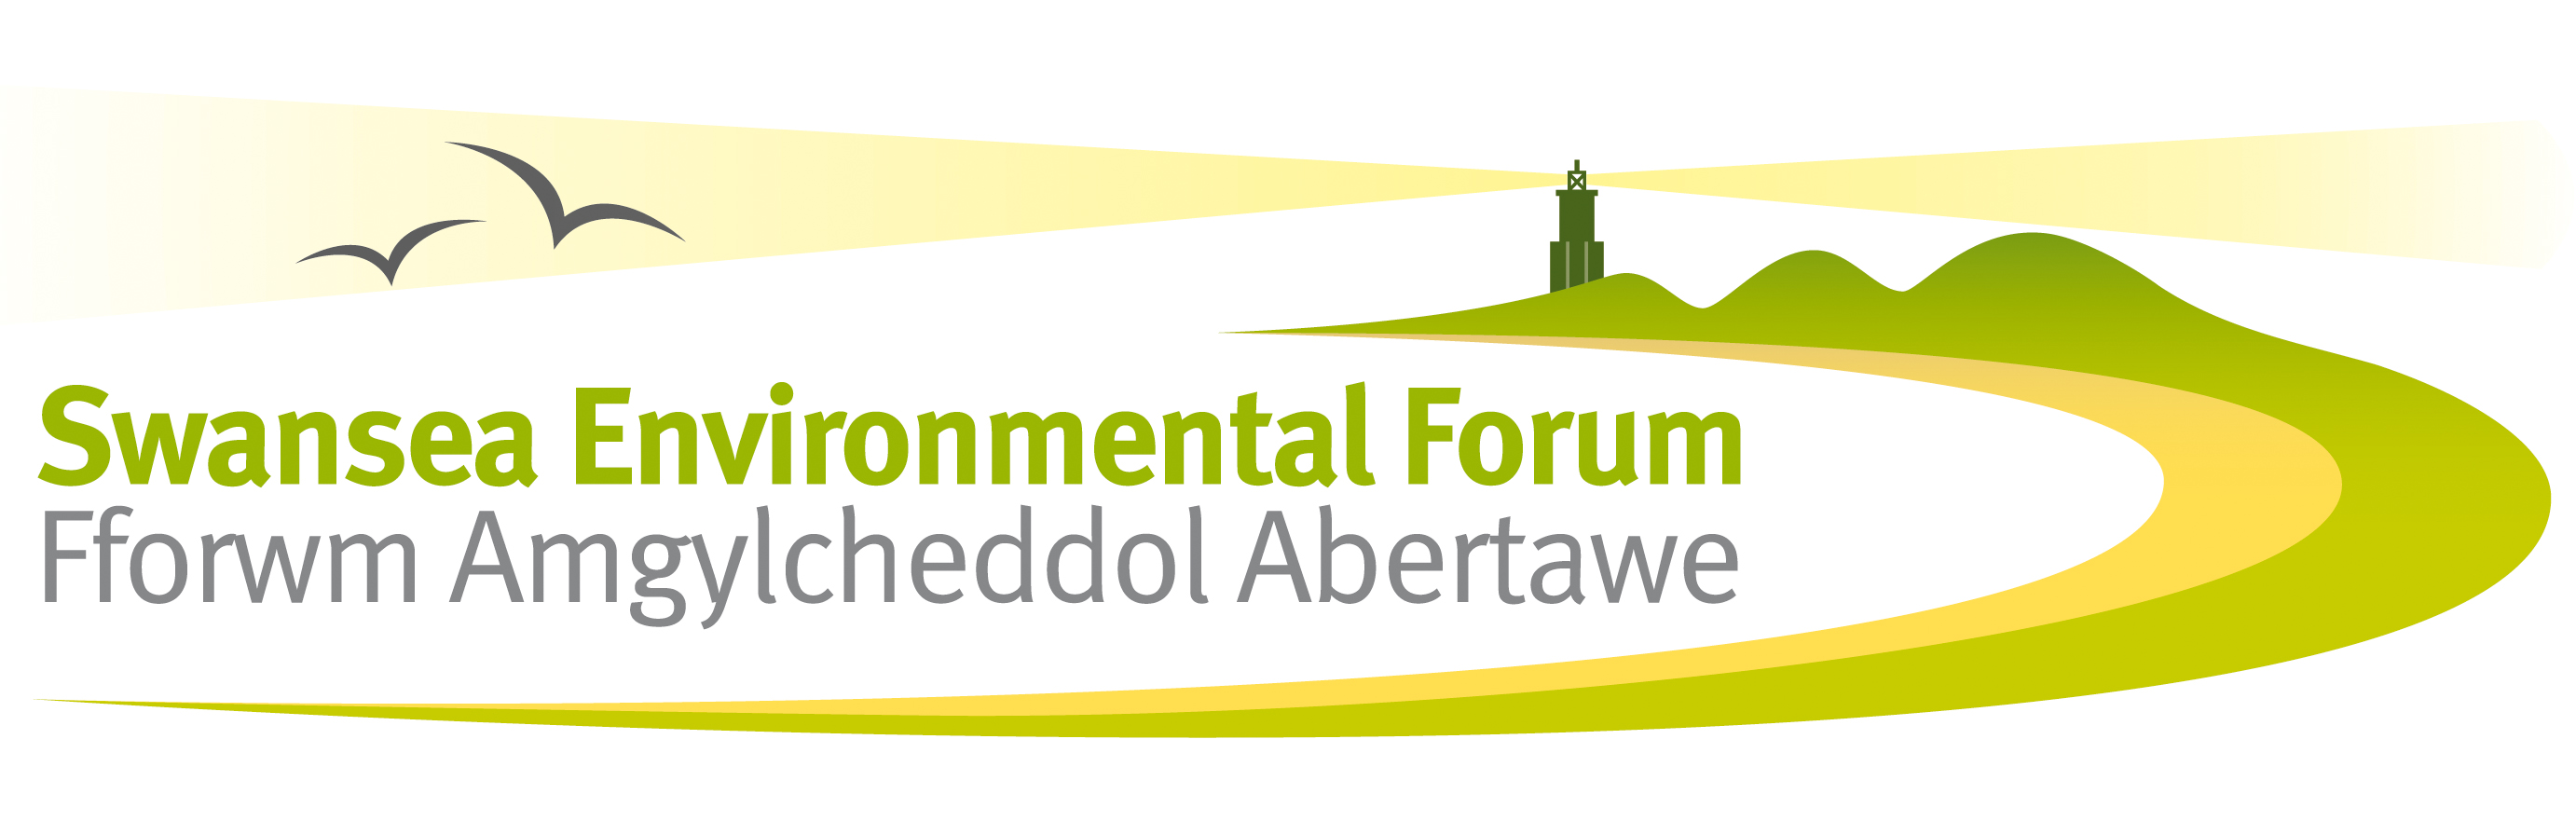 Swansea Environmental Forum partner logo